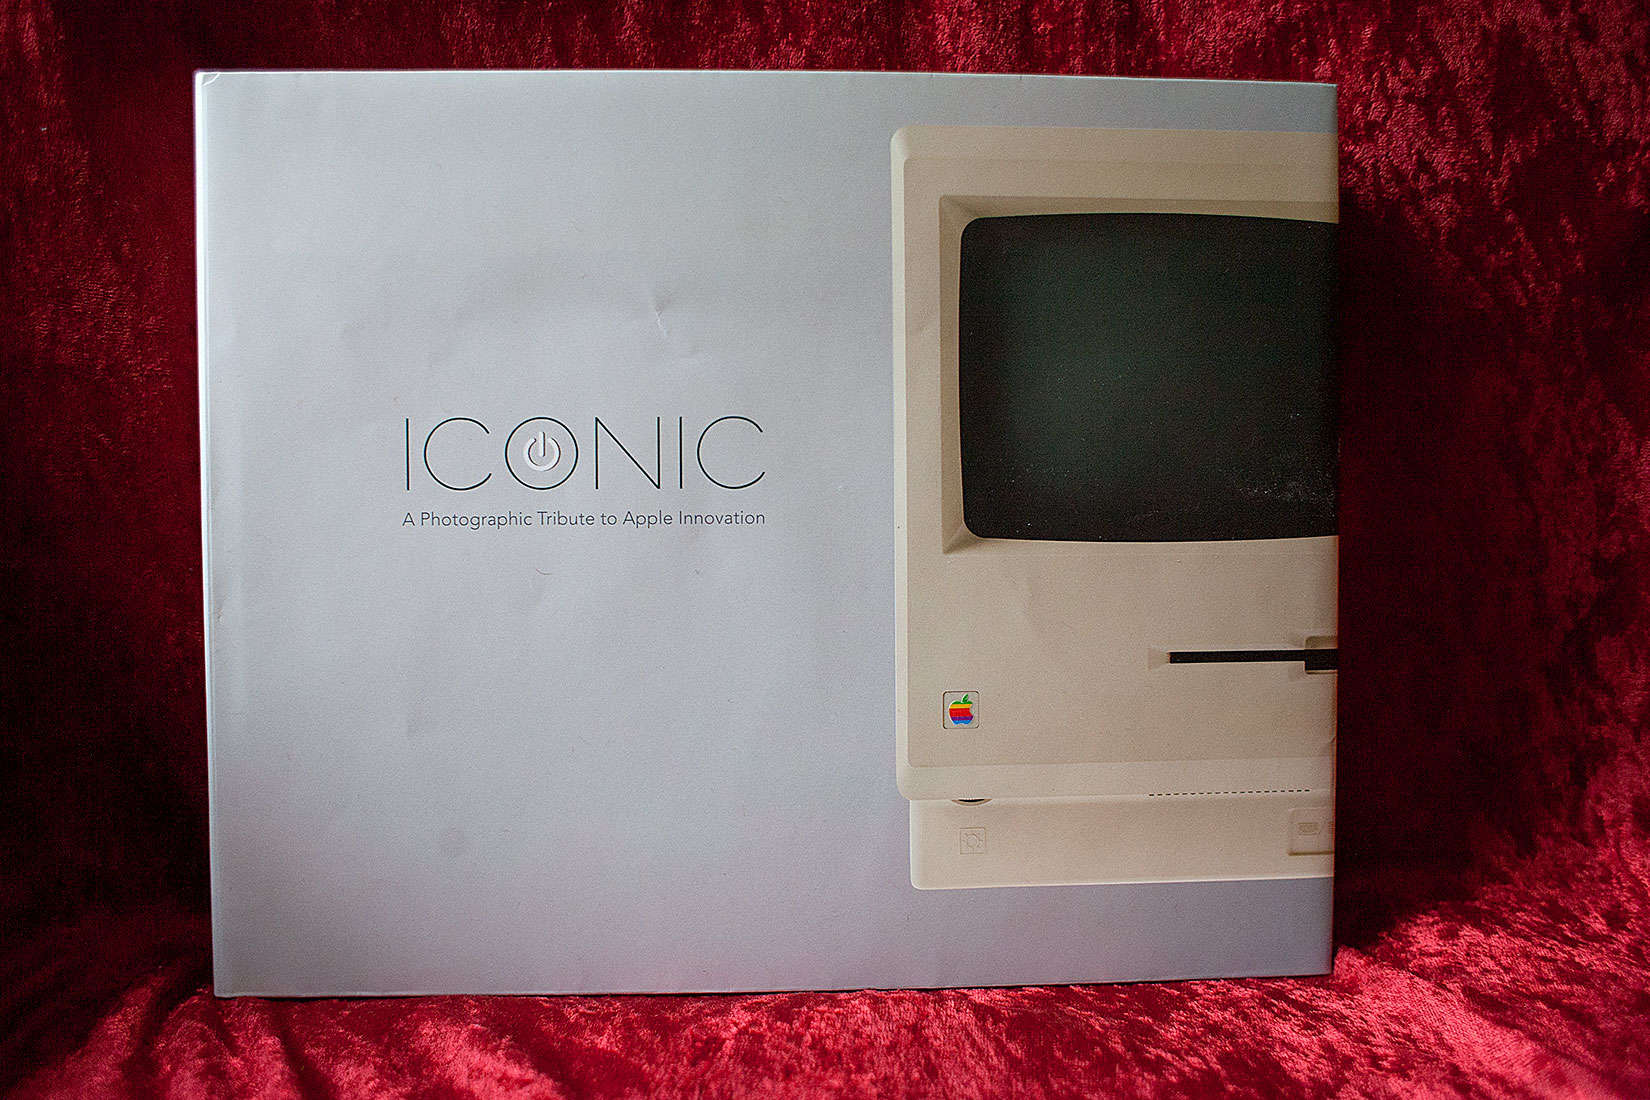 Jonathan Zufi's book ICONIC has been popular with Apple fans.